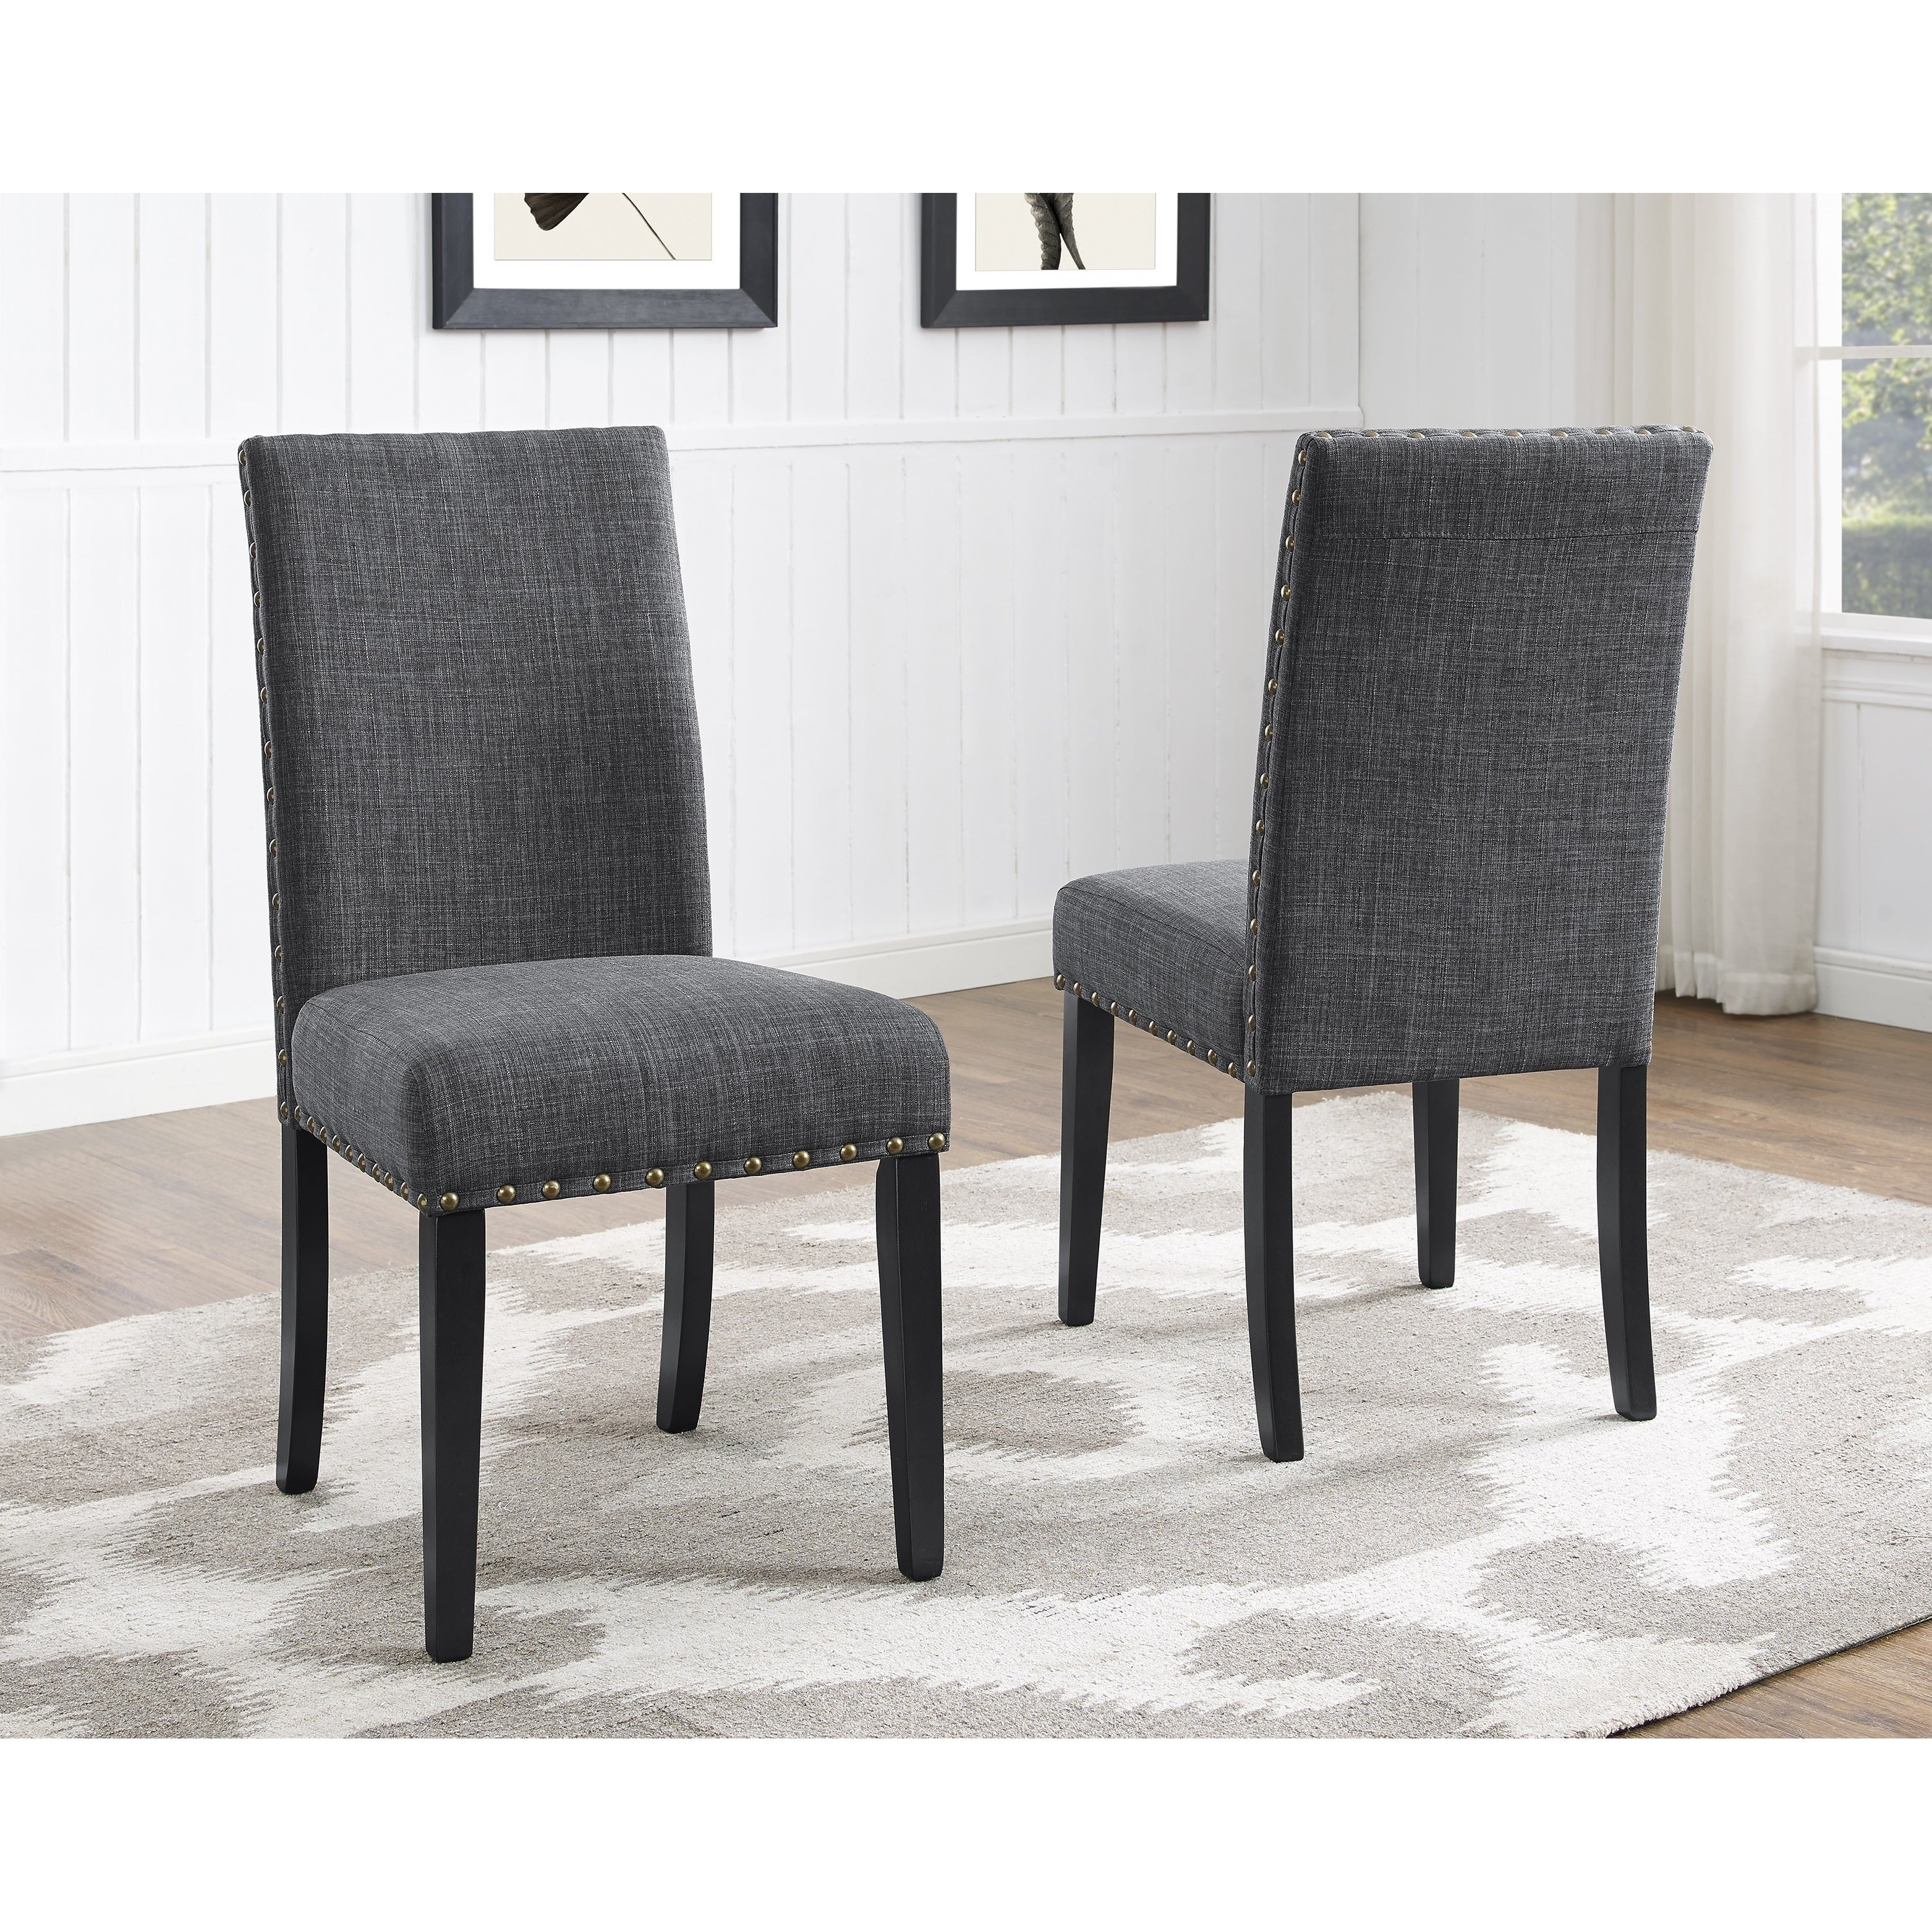 225 & Copper Grove Humboldt Nailhead-trim Fabric Dining Chairs (Set of 2)